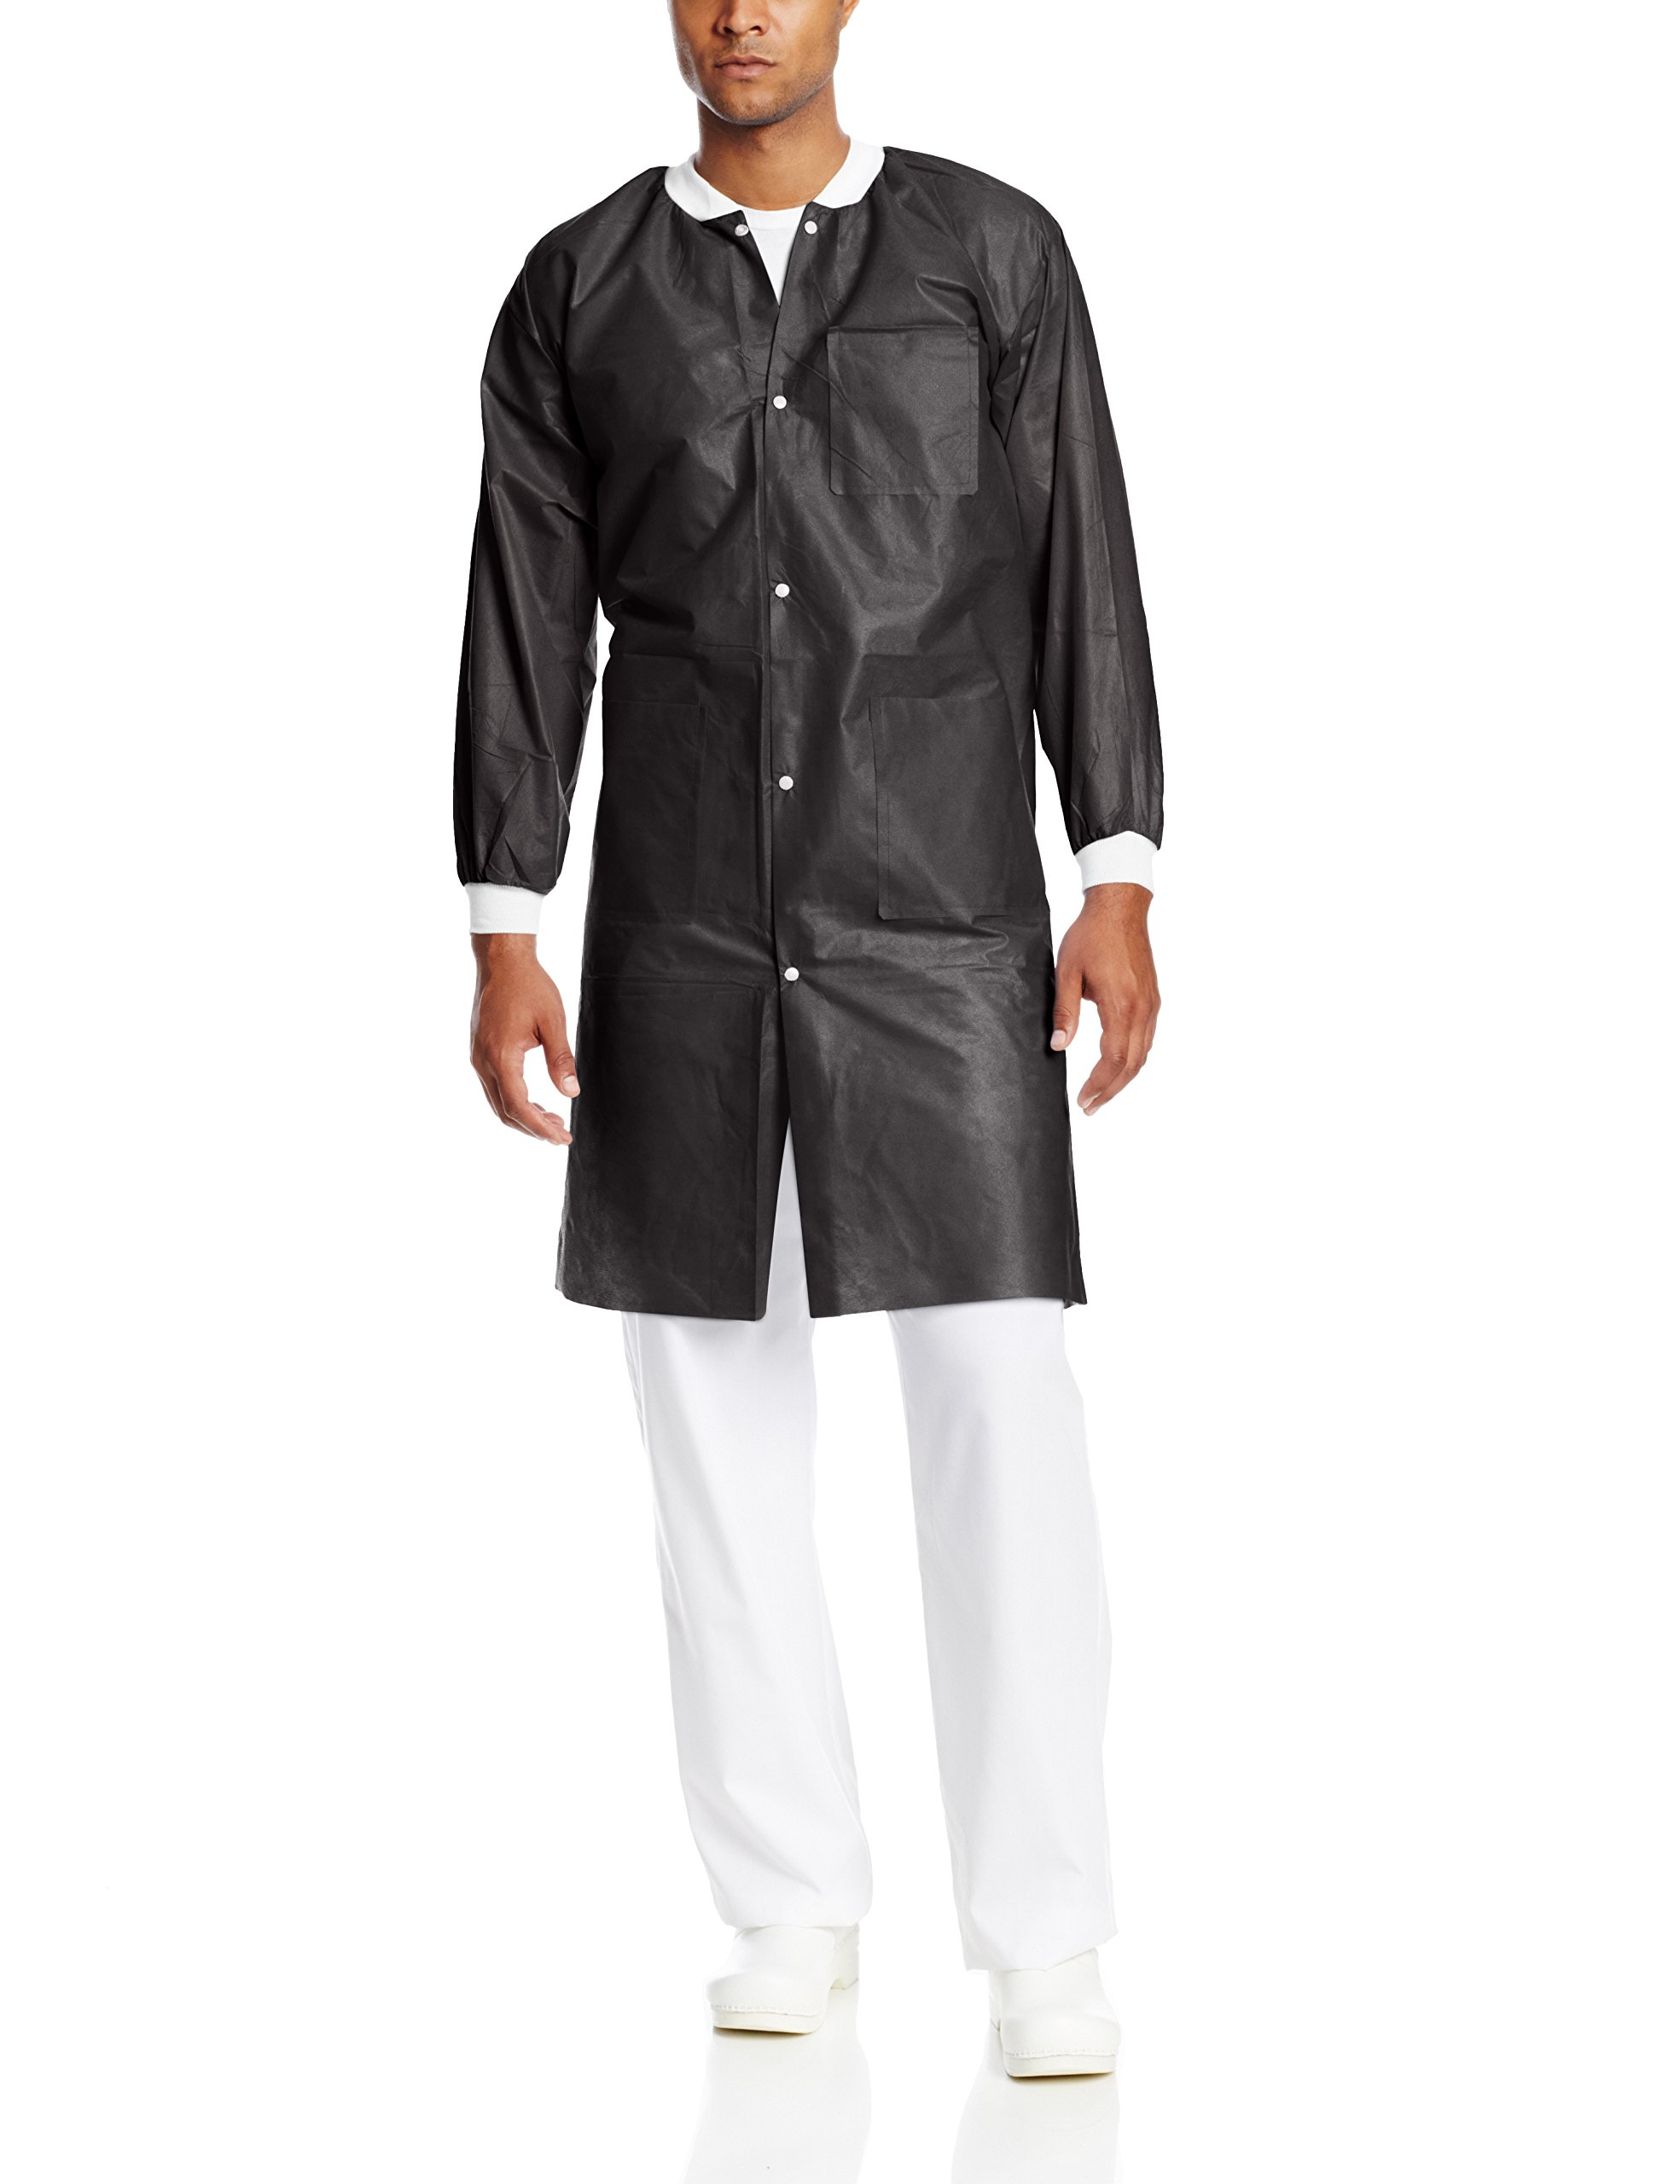 ValuMax 3660BK2XL Extra-Safe, Wrinkle-Free, Noble Looking Disposable SMS Knee Length Lab Coat, Black, 2XL, Pack of 10